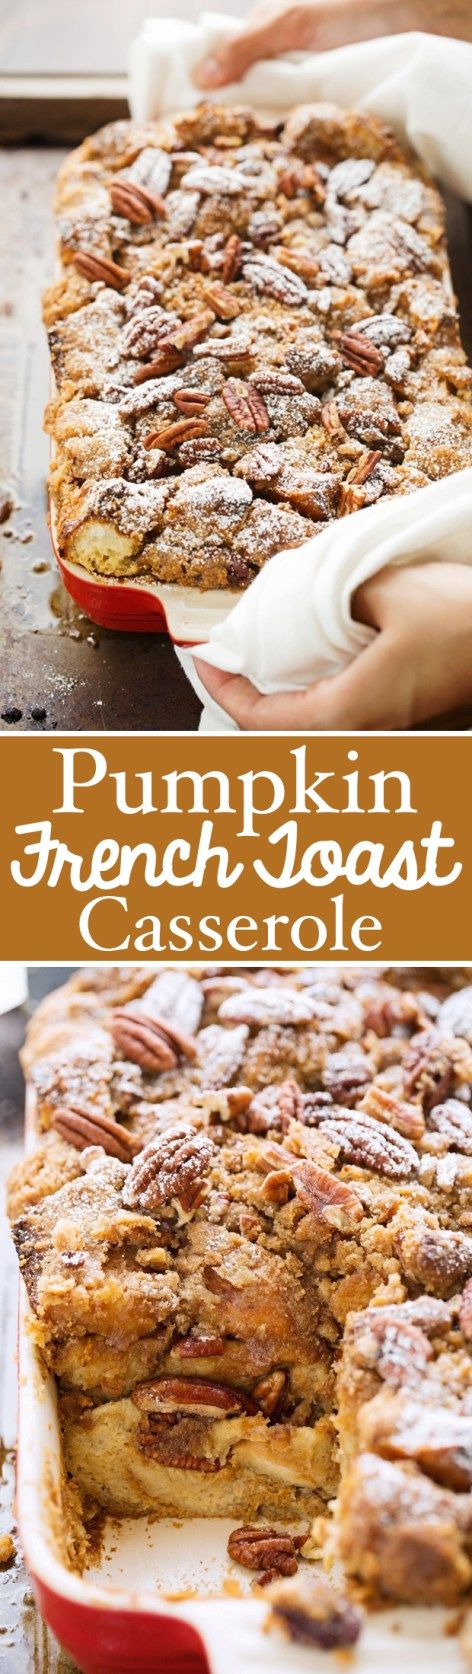 Pumpkin French Toast Casserole - This recipe is super friendly to make ahead of…